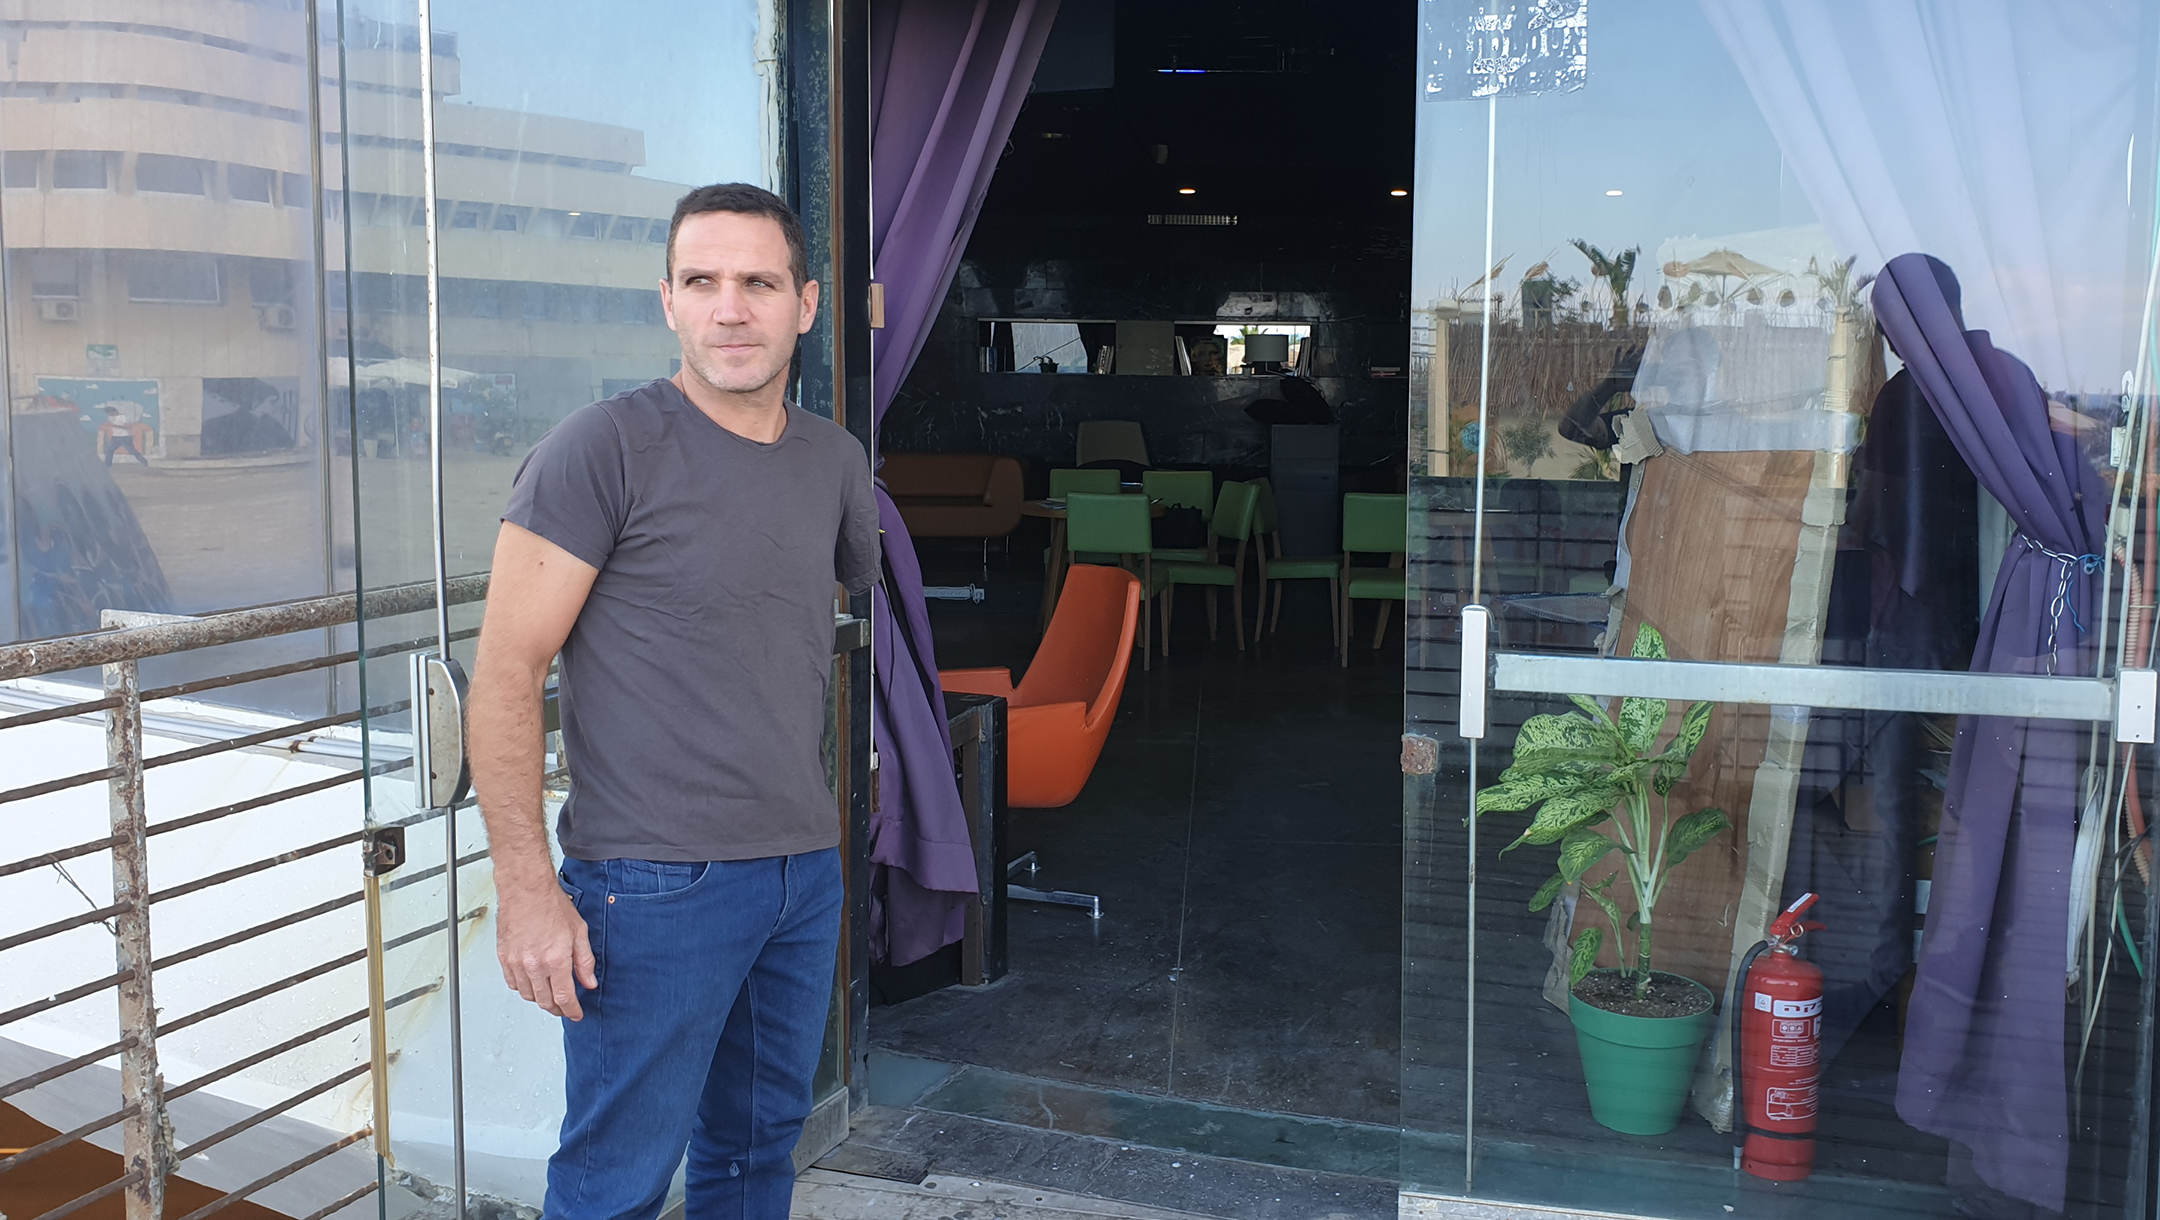 Social activist Yakir Segev standing outside what used to be the Pussycat strip club in Tel Aviv, Israel on Oct. 7, 2019. (Cnaan Liphshiz/JTA)